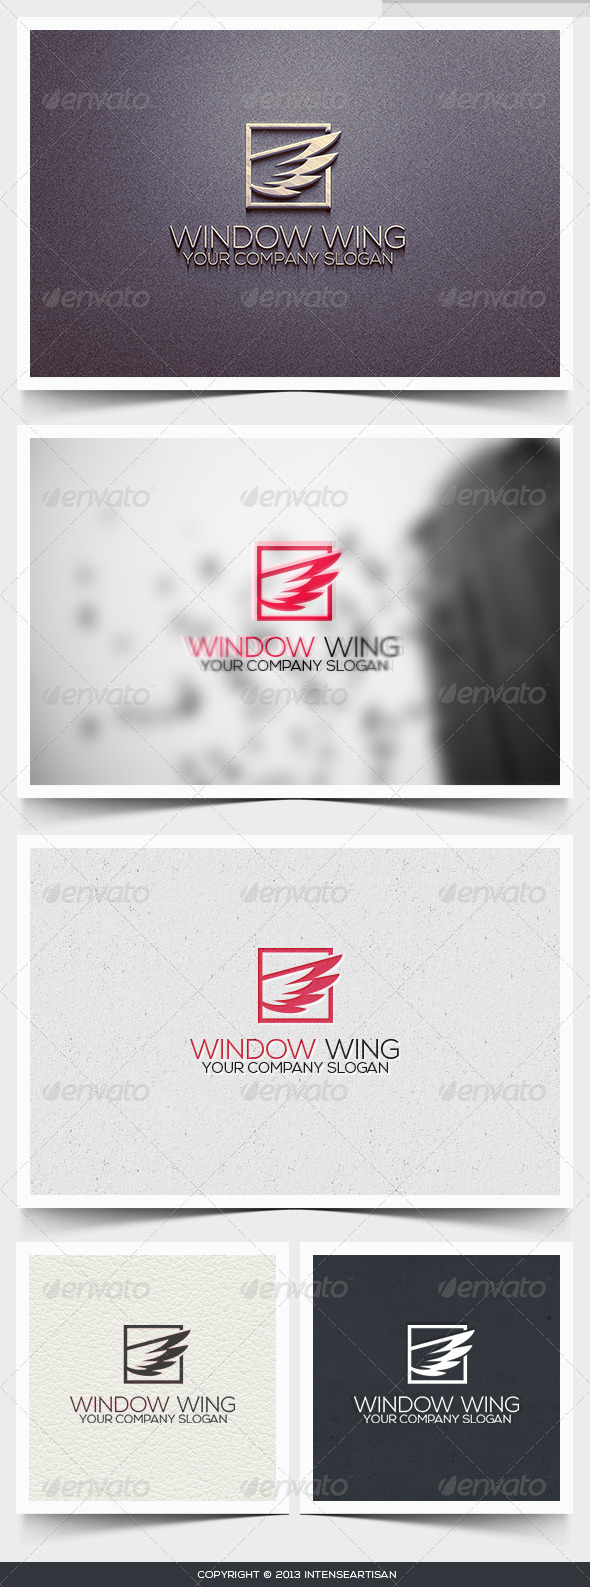 Window Wing Logo Template - Objects Logo Templates